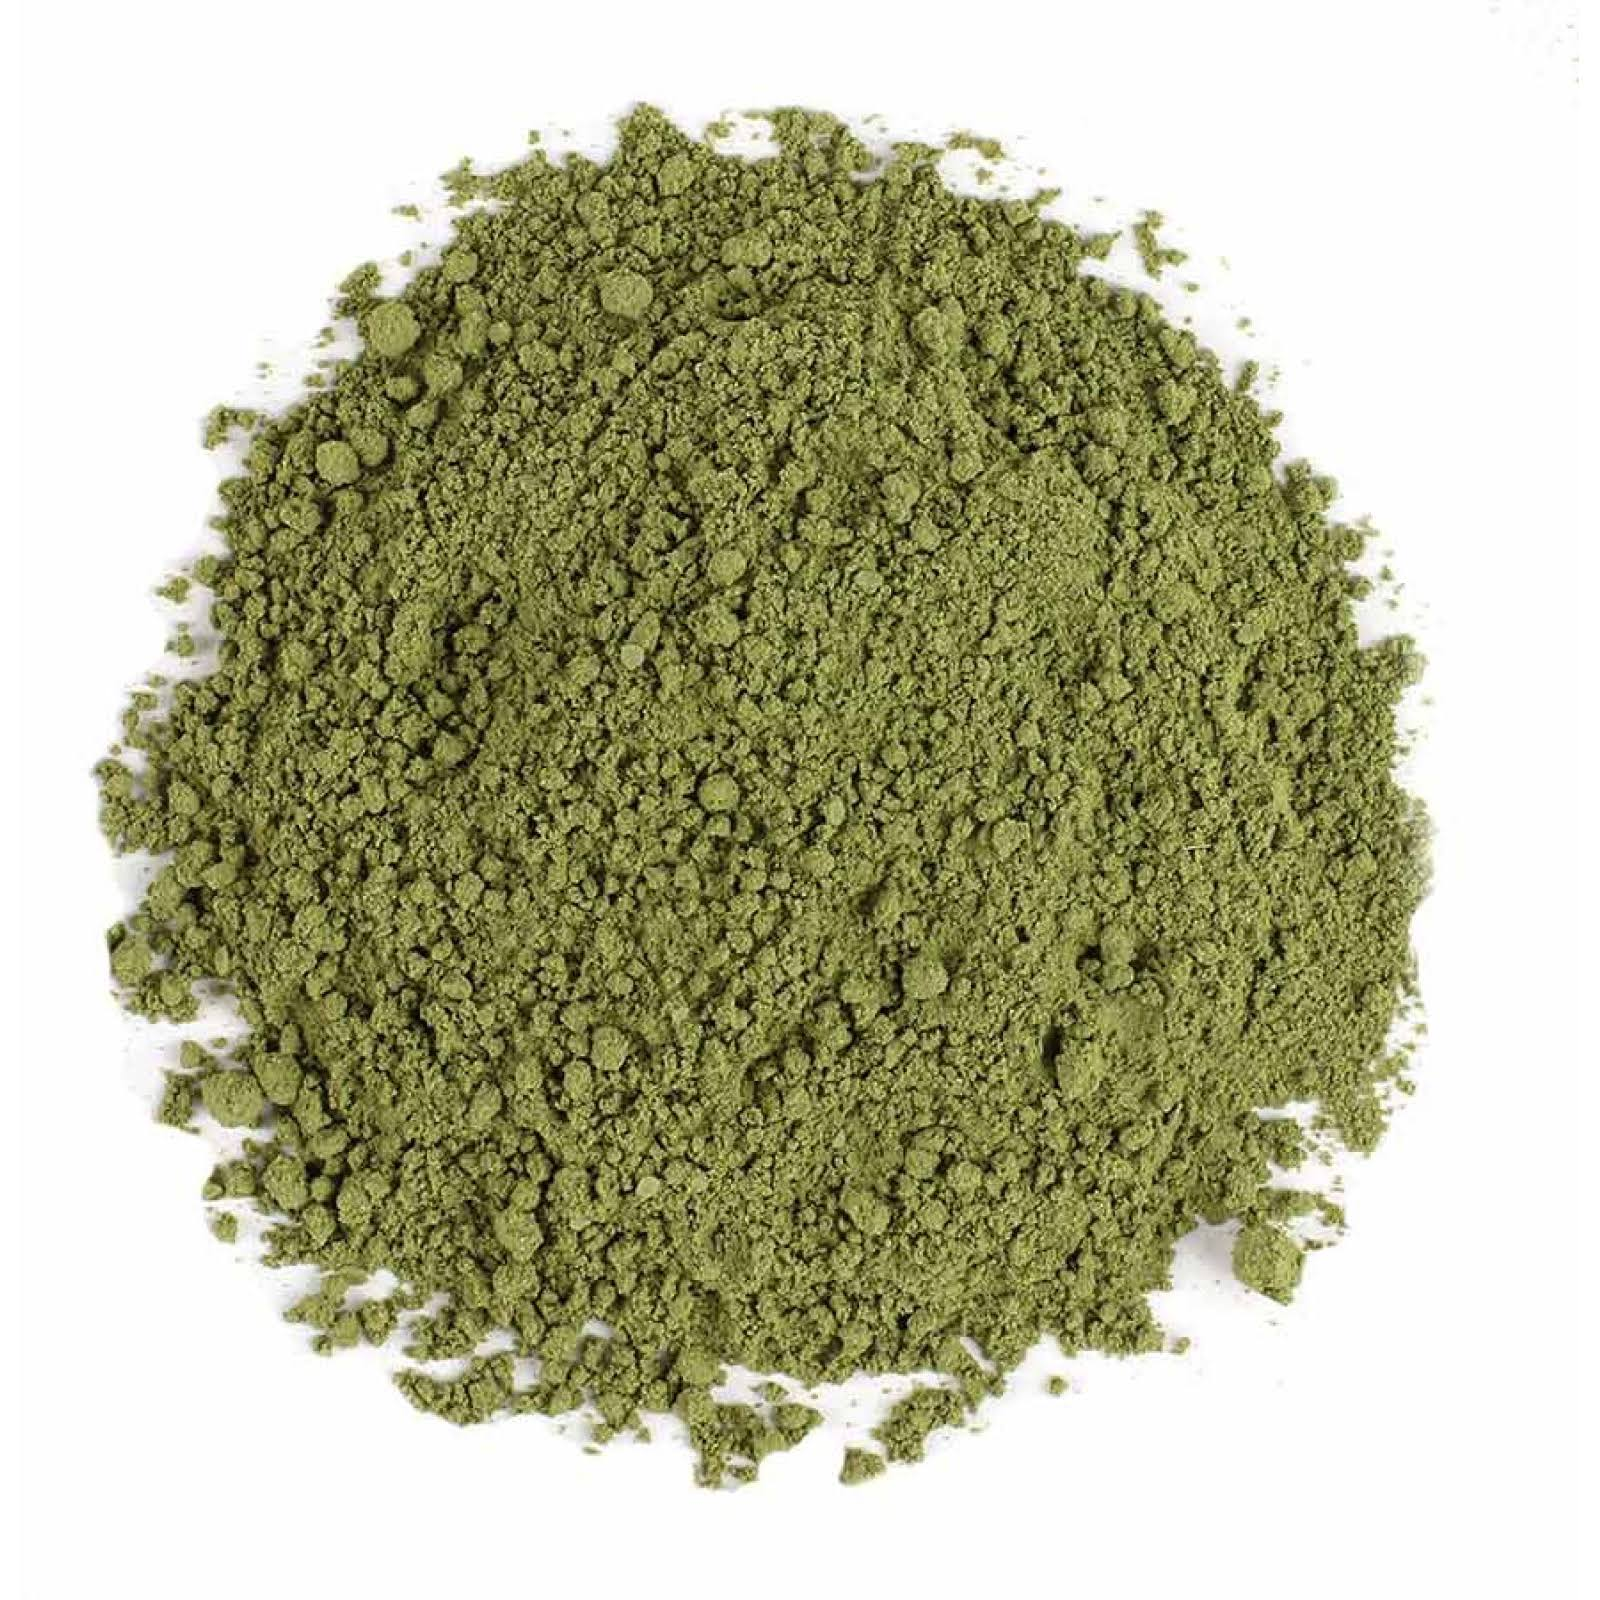 Frontier Co-op Japanese Matcha Green Tea Powder, Organic 1 lb